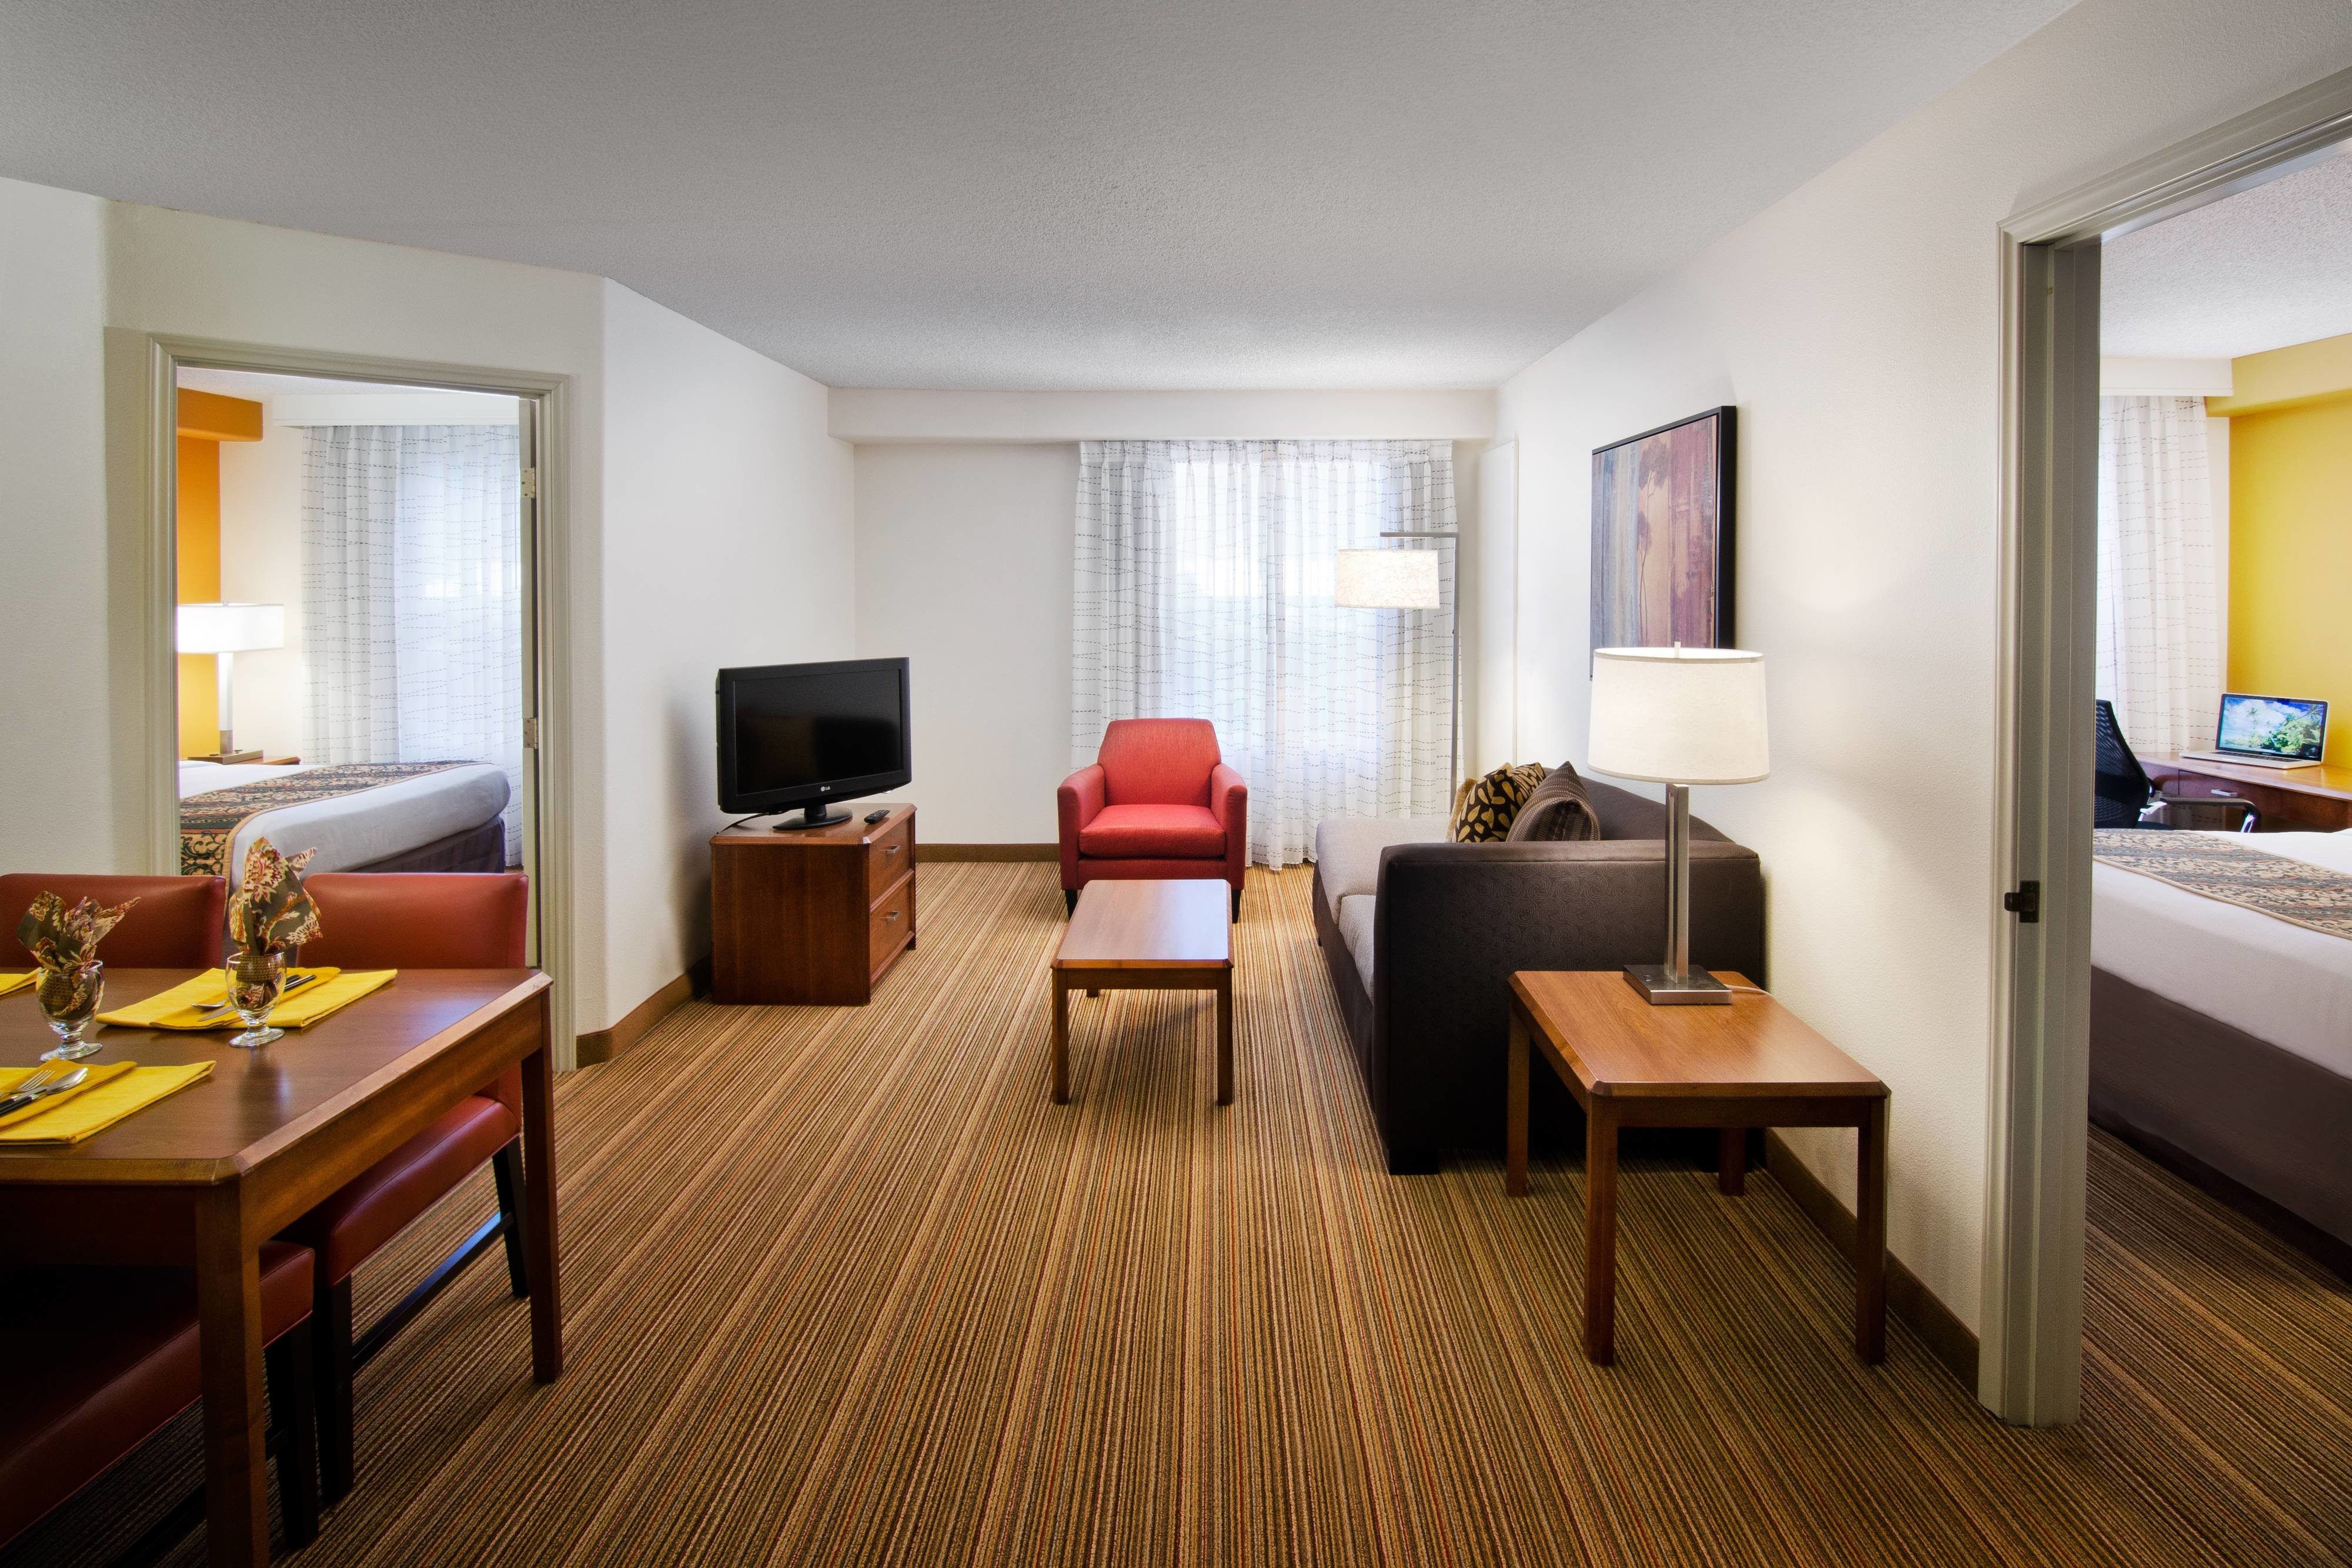 Best Hotel Suites In Reno Nv Residence Inn Reno With Pictures